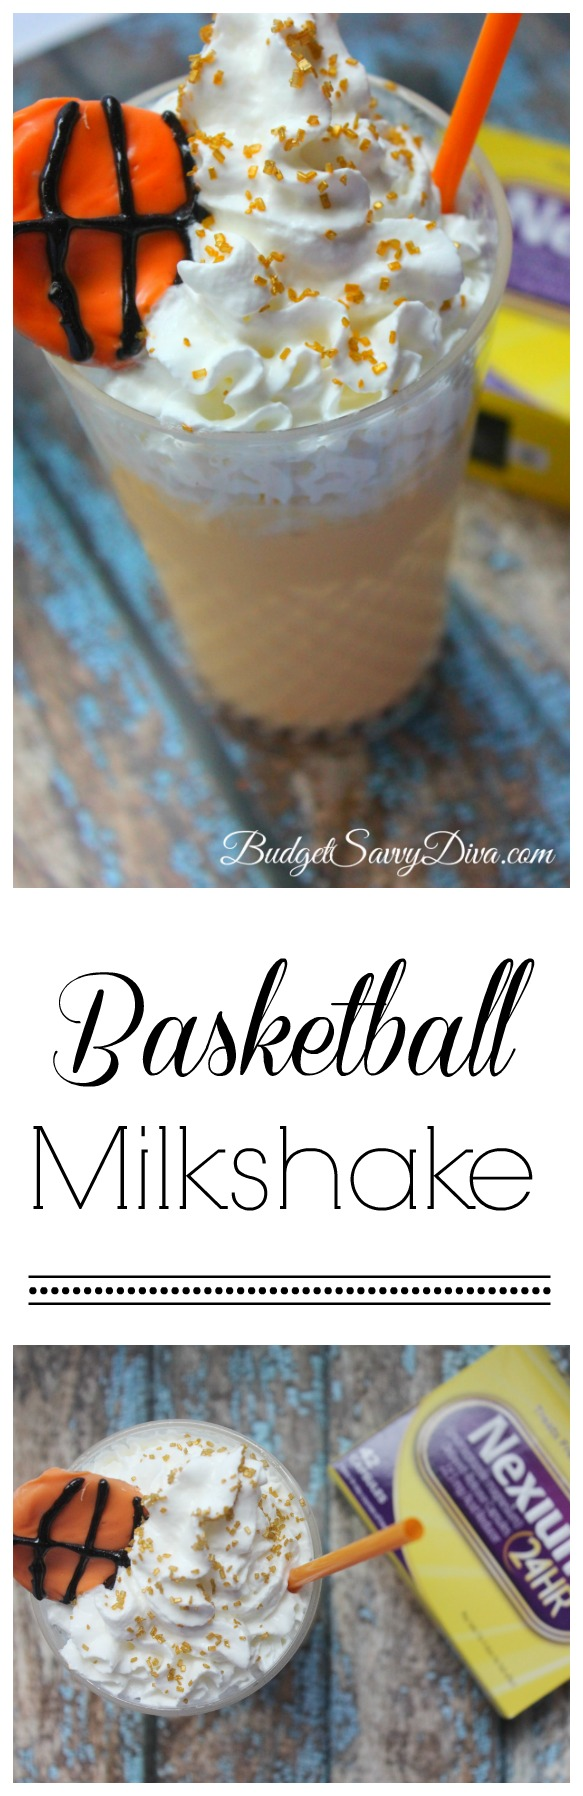 Basketball Milkshake Recipe